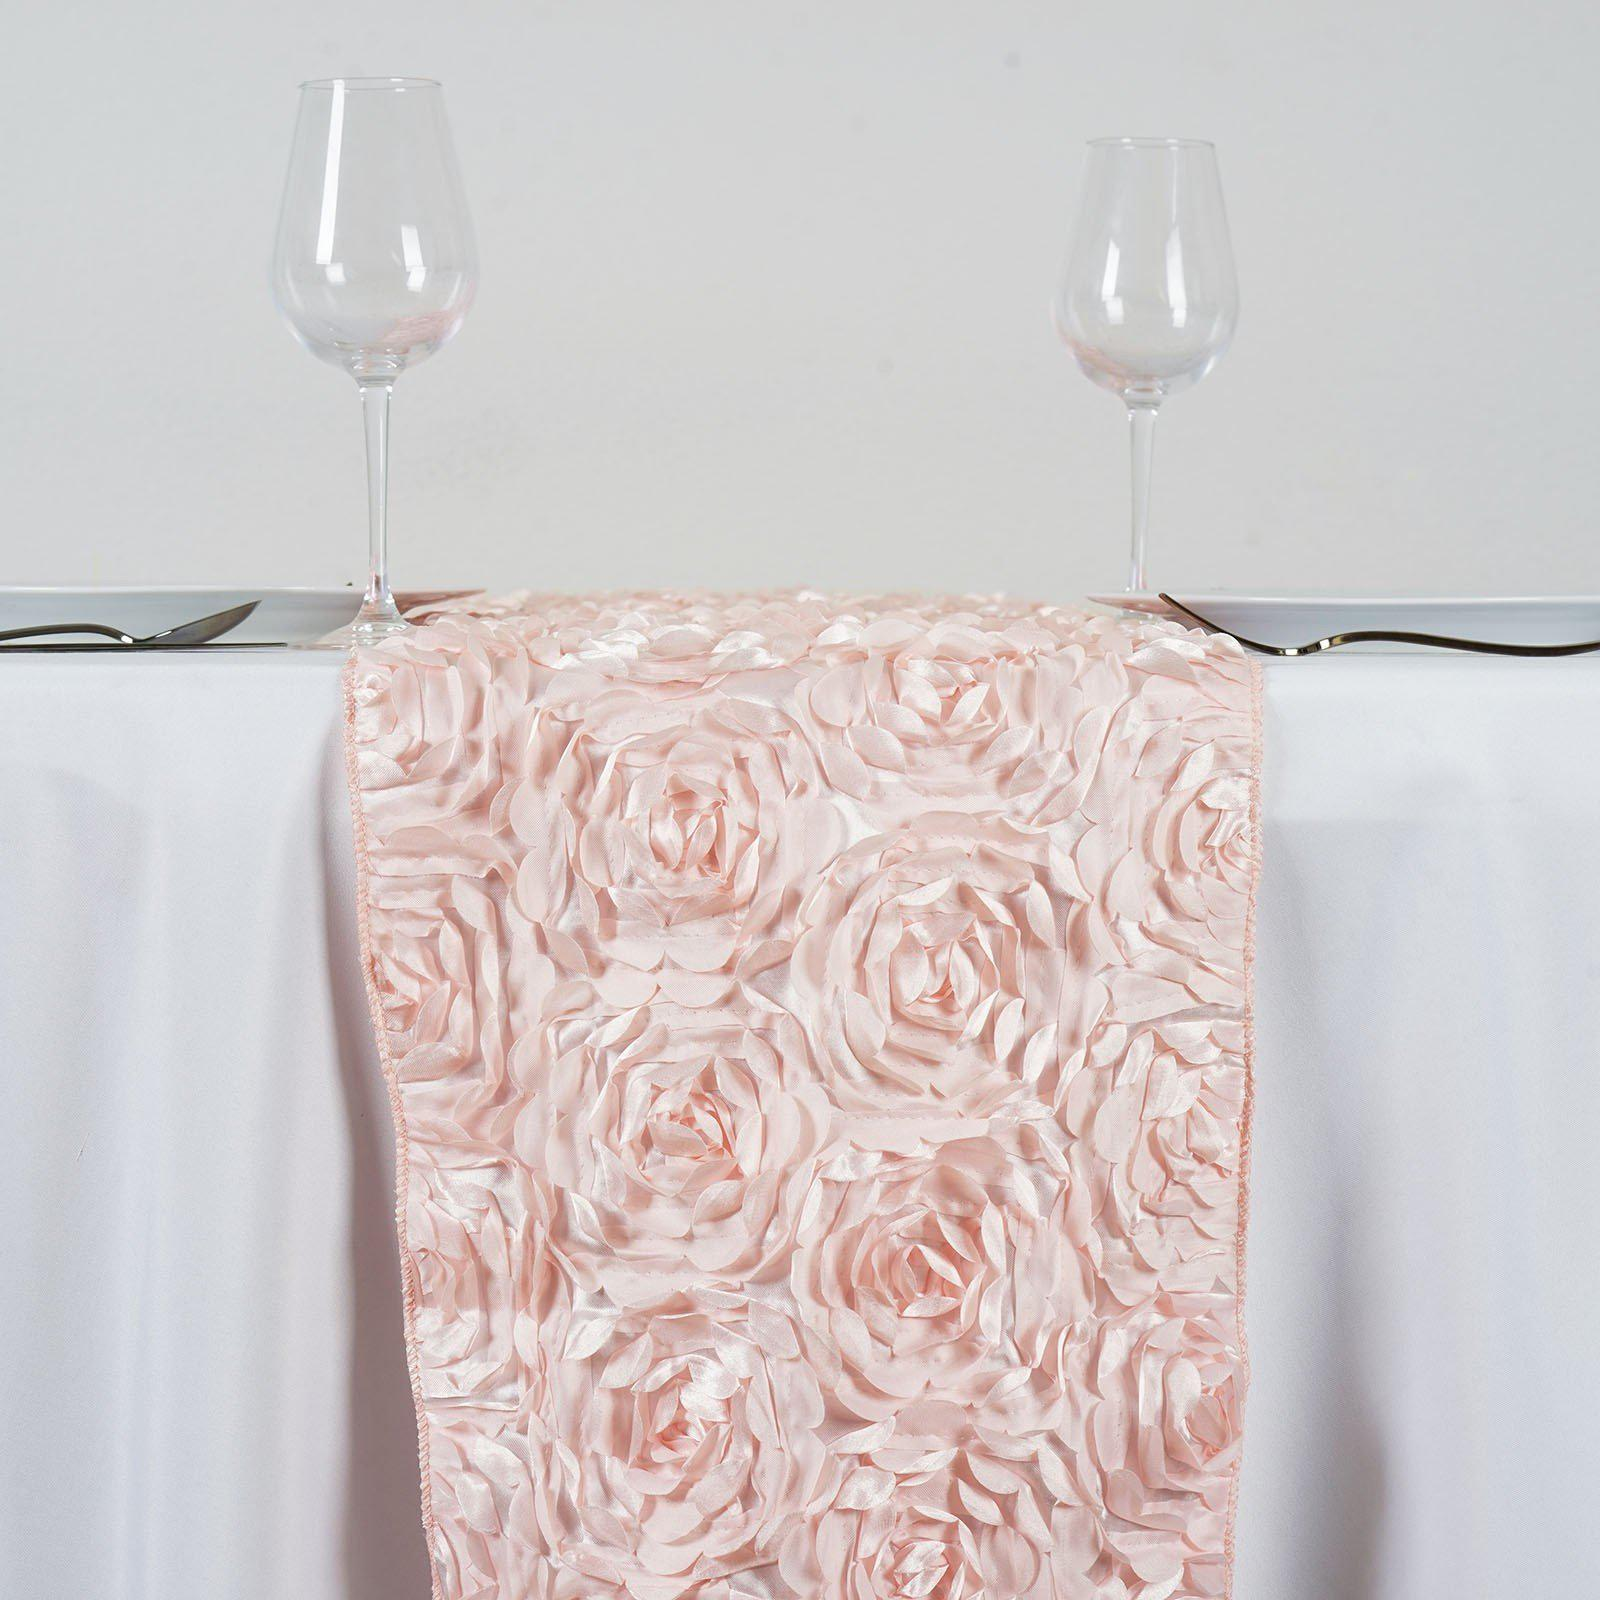 14x108 wholesale flower rosette 3d satin table runner for 14x108 wholesale flower rosette 3d satin table runner for wedding party event table junglespirit Image collections